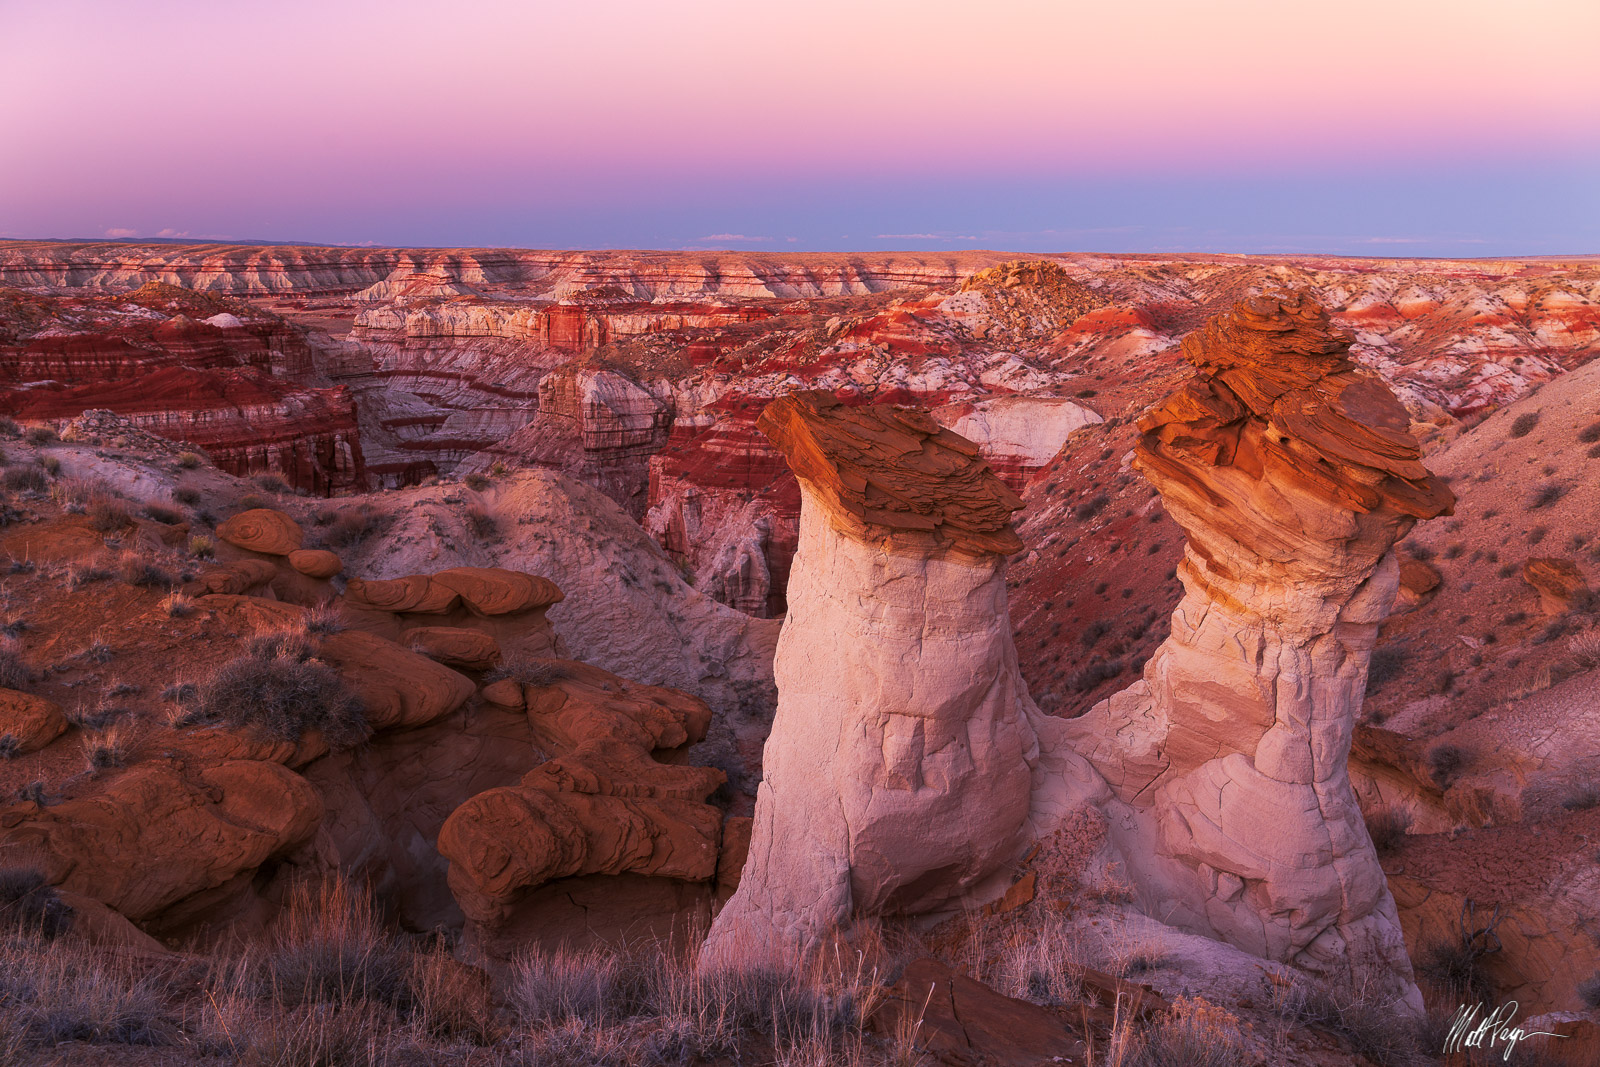 Desert Southwest, Hoodoo, Sunset, geologic, photo